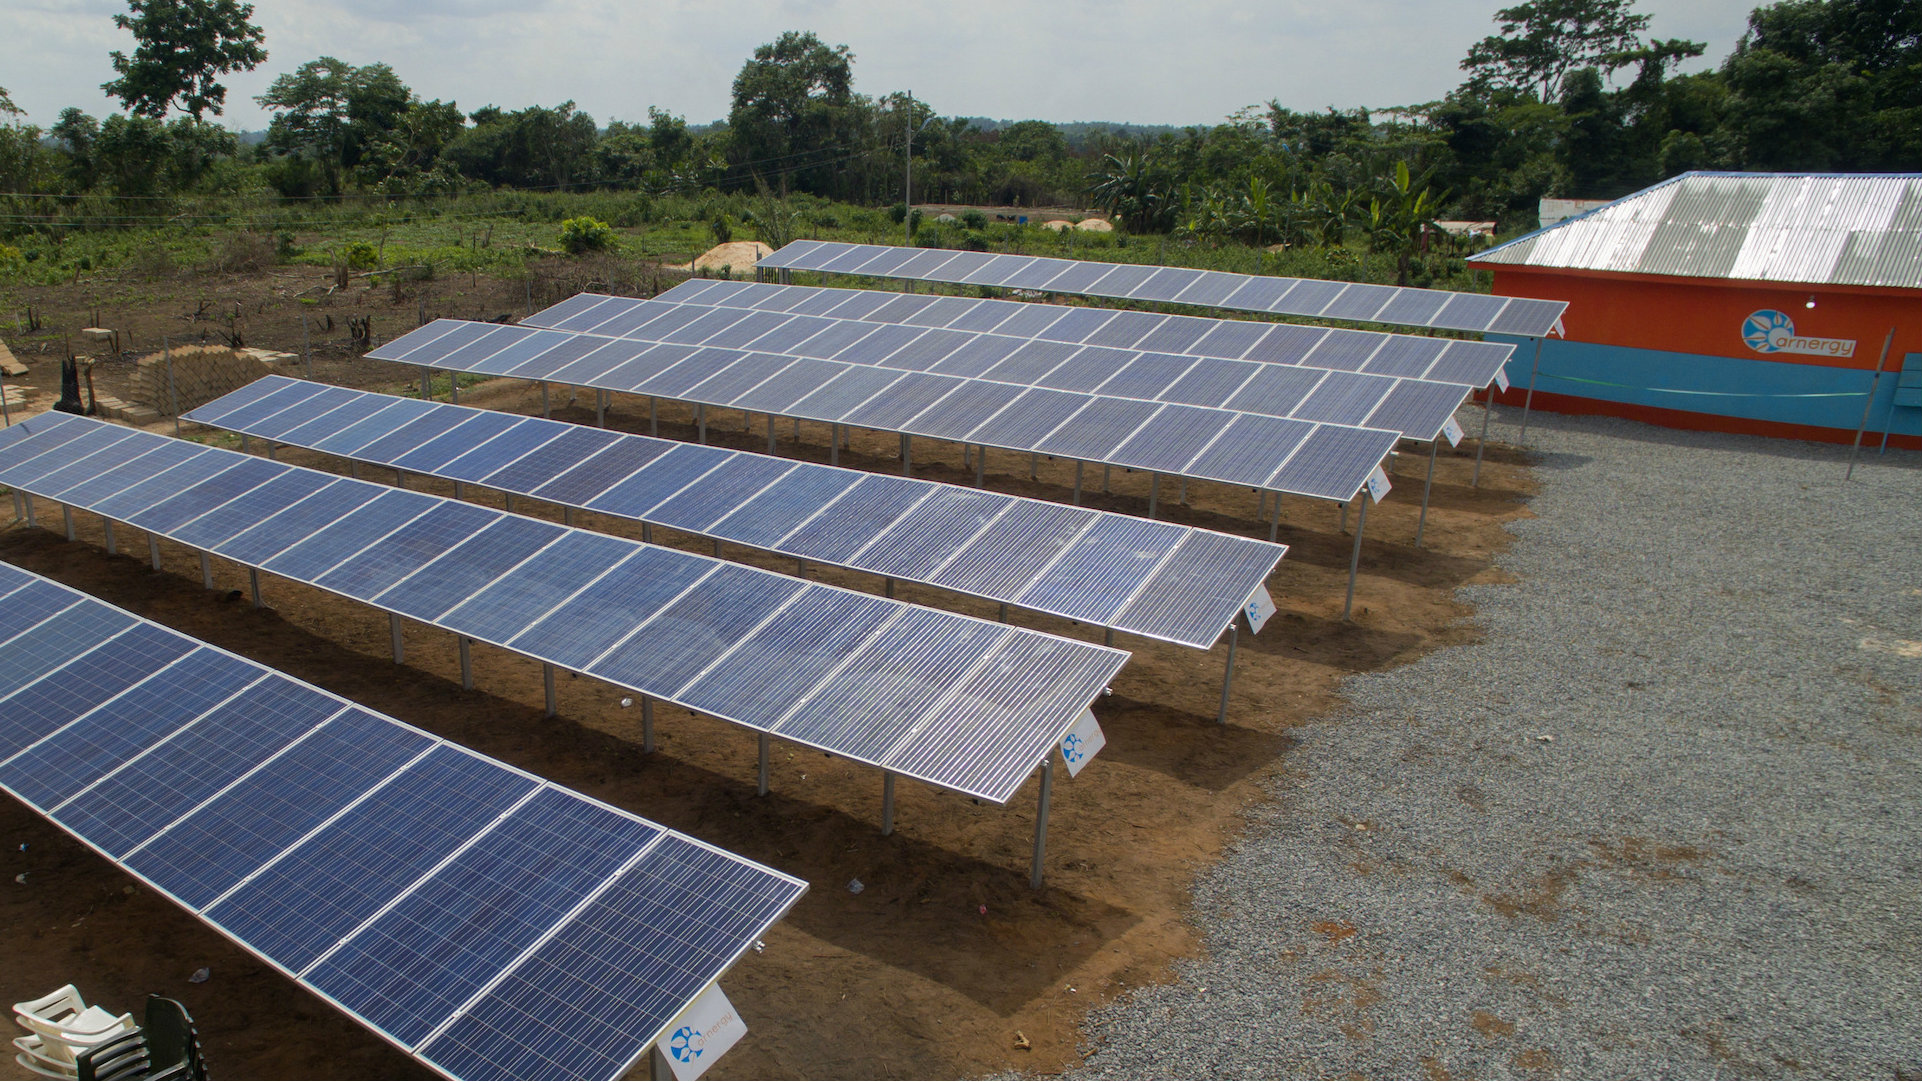 A mini solar grid installed in Edo state, Nigeria as part of Arnergy's rural electrification project.